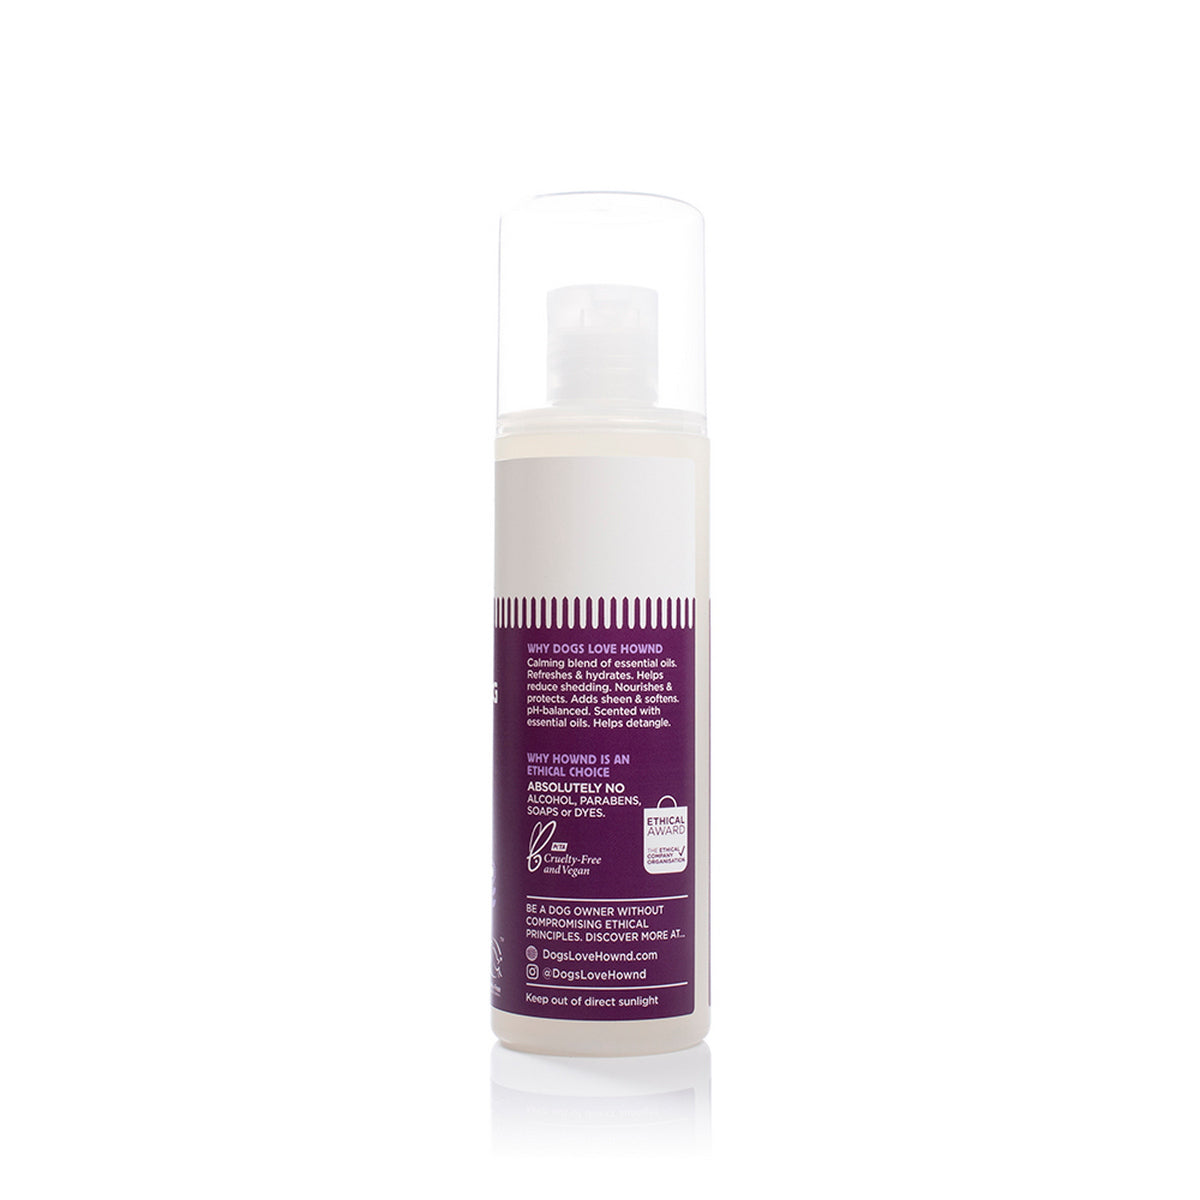 Keep Calm Conditioning Shampoo (250ml) - Hownd